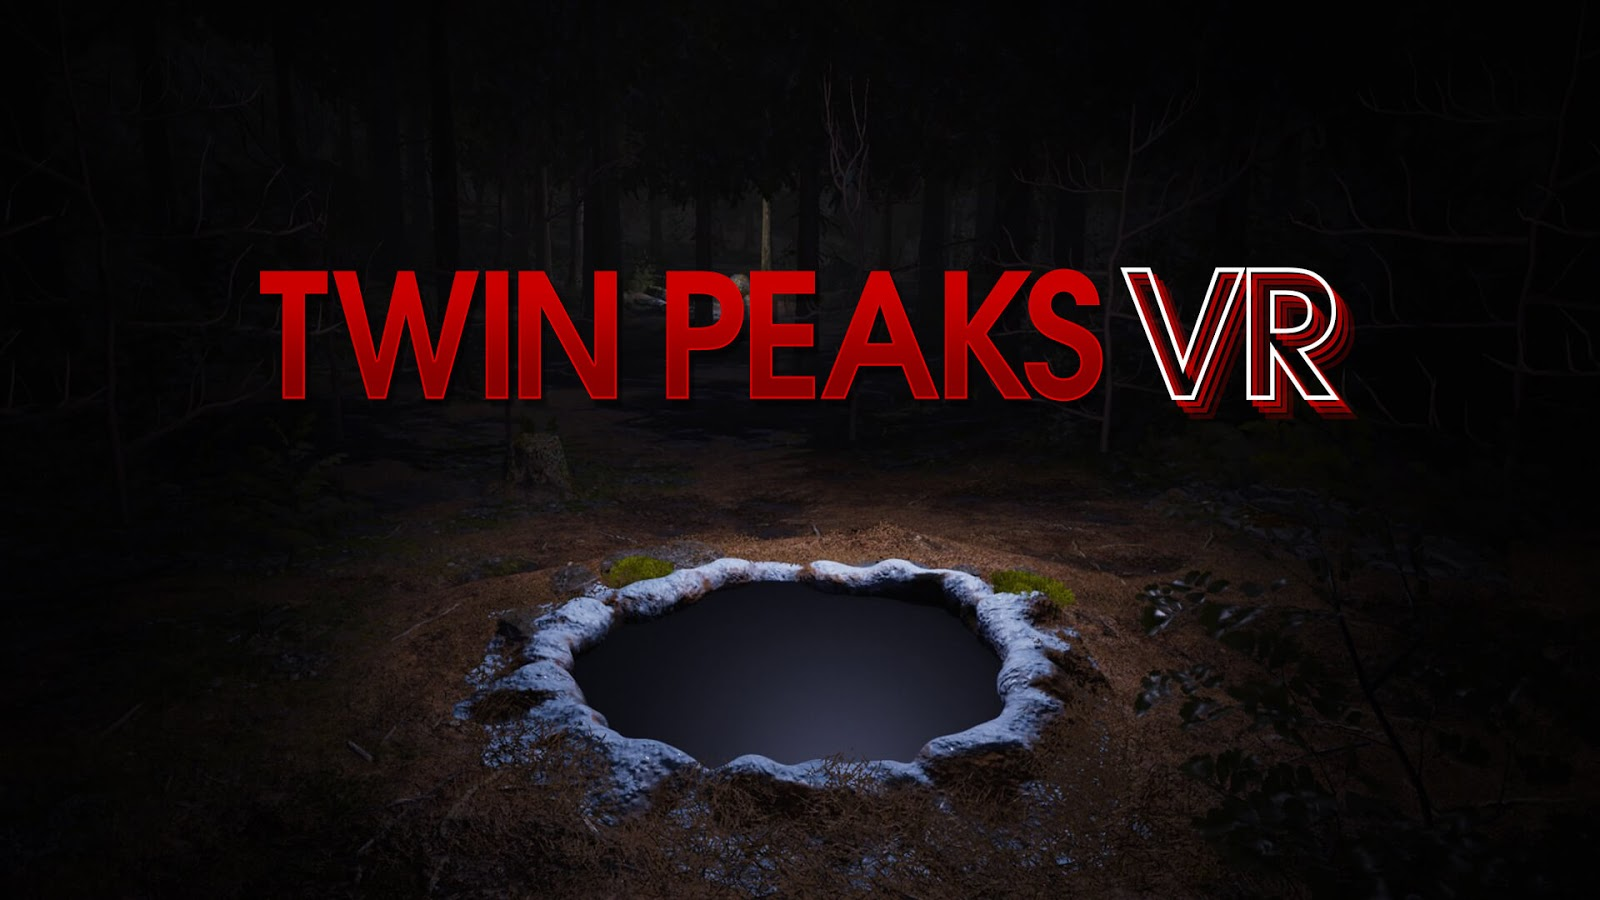 Collider Games Collaborates With Festival of Disruption And Showtime To Preview 'Twin Peaks VR'